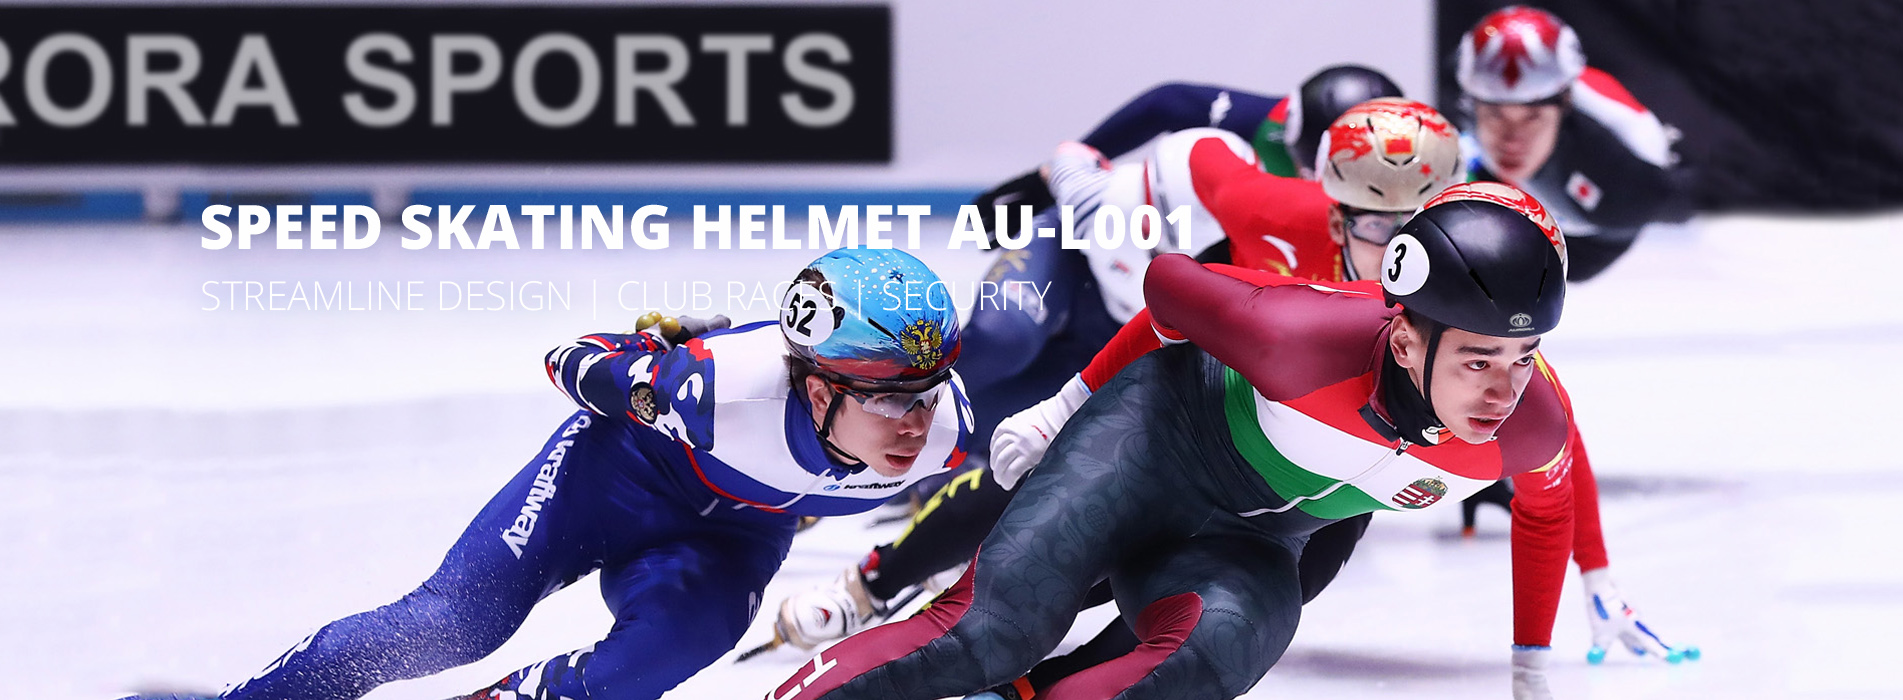 speed skating helmet au-l001